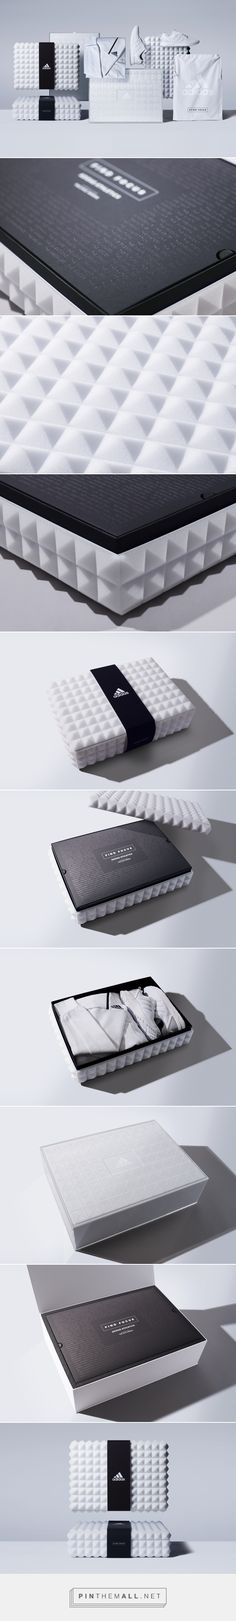 Adidas Athletics packaging design by Colt - http://www.packagingoftheworld.com/2016/10/adidas-athletics.html